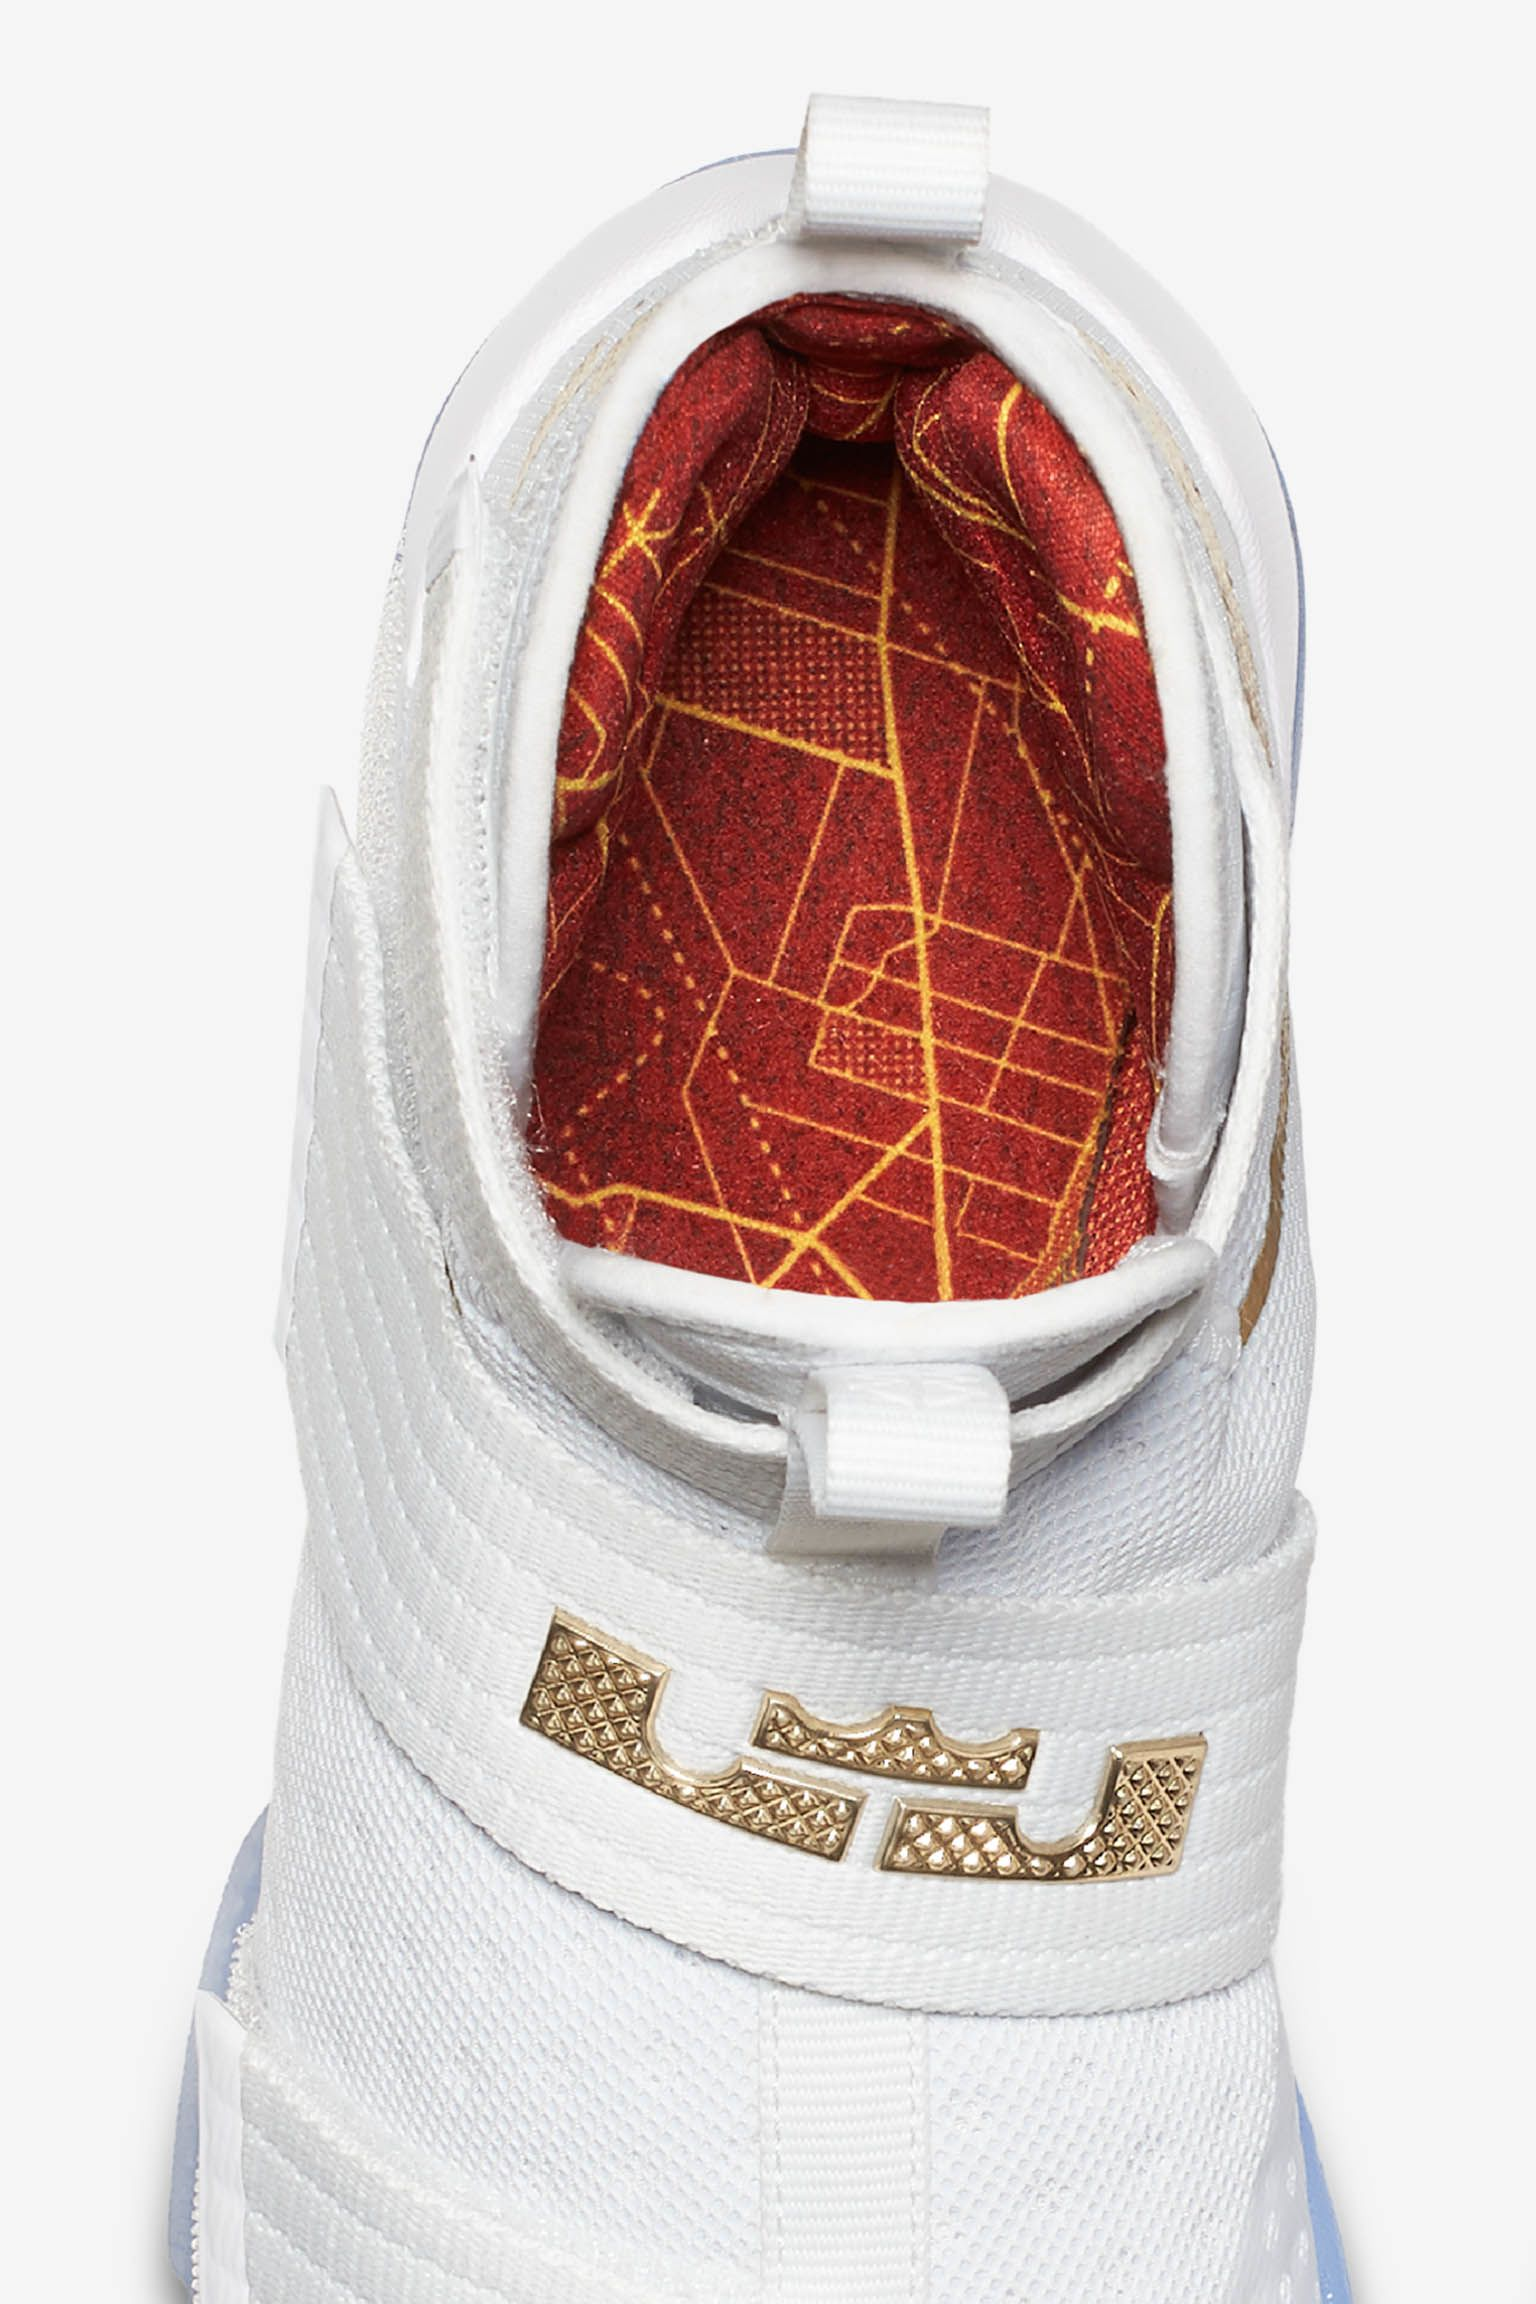 LeBron/Kyrie Game 6: Unbroken Competition Pack. Release Date